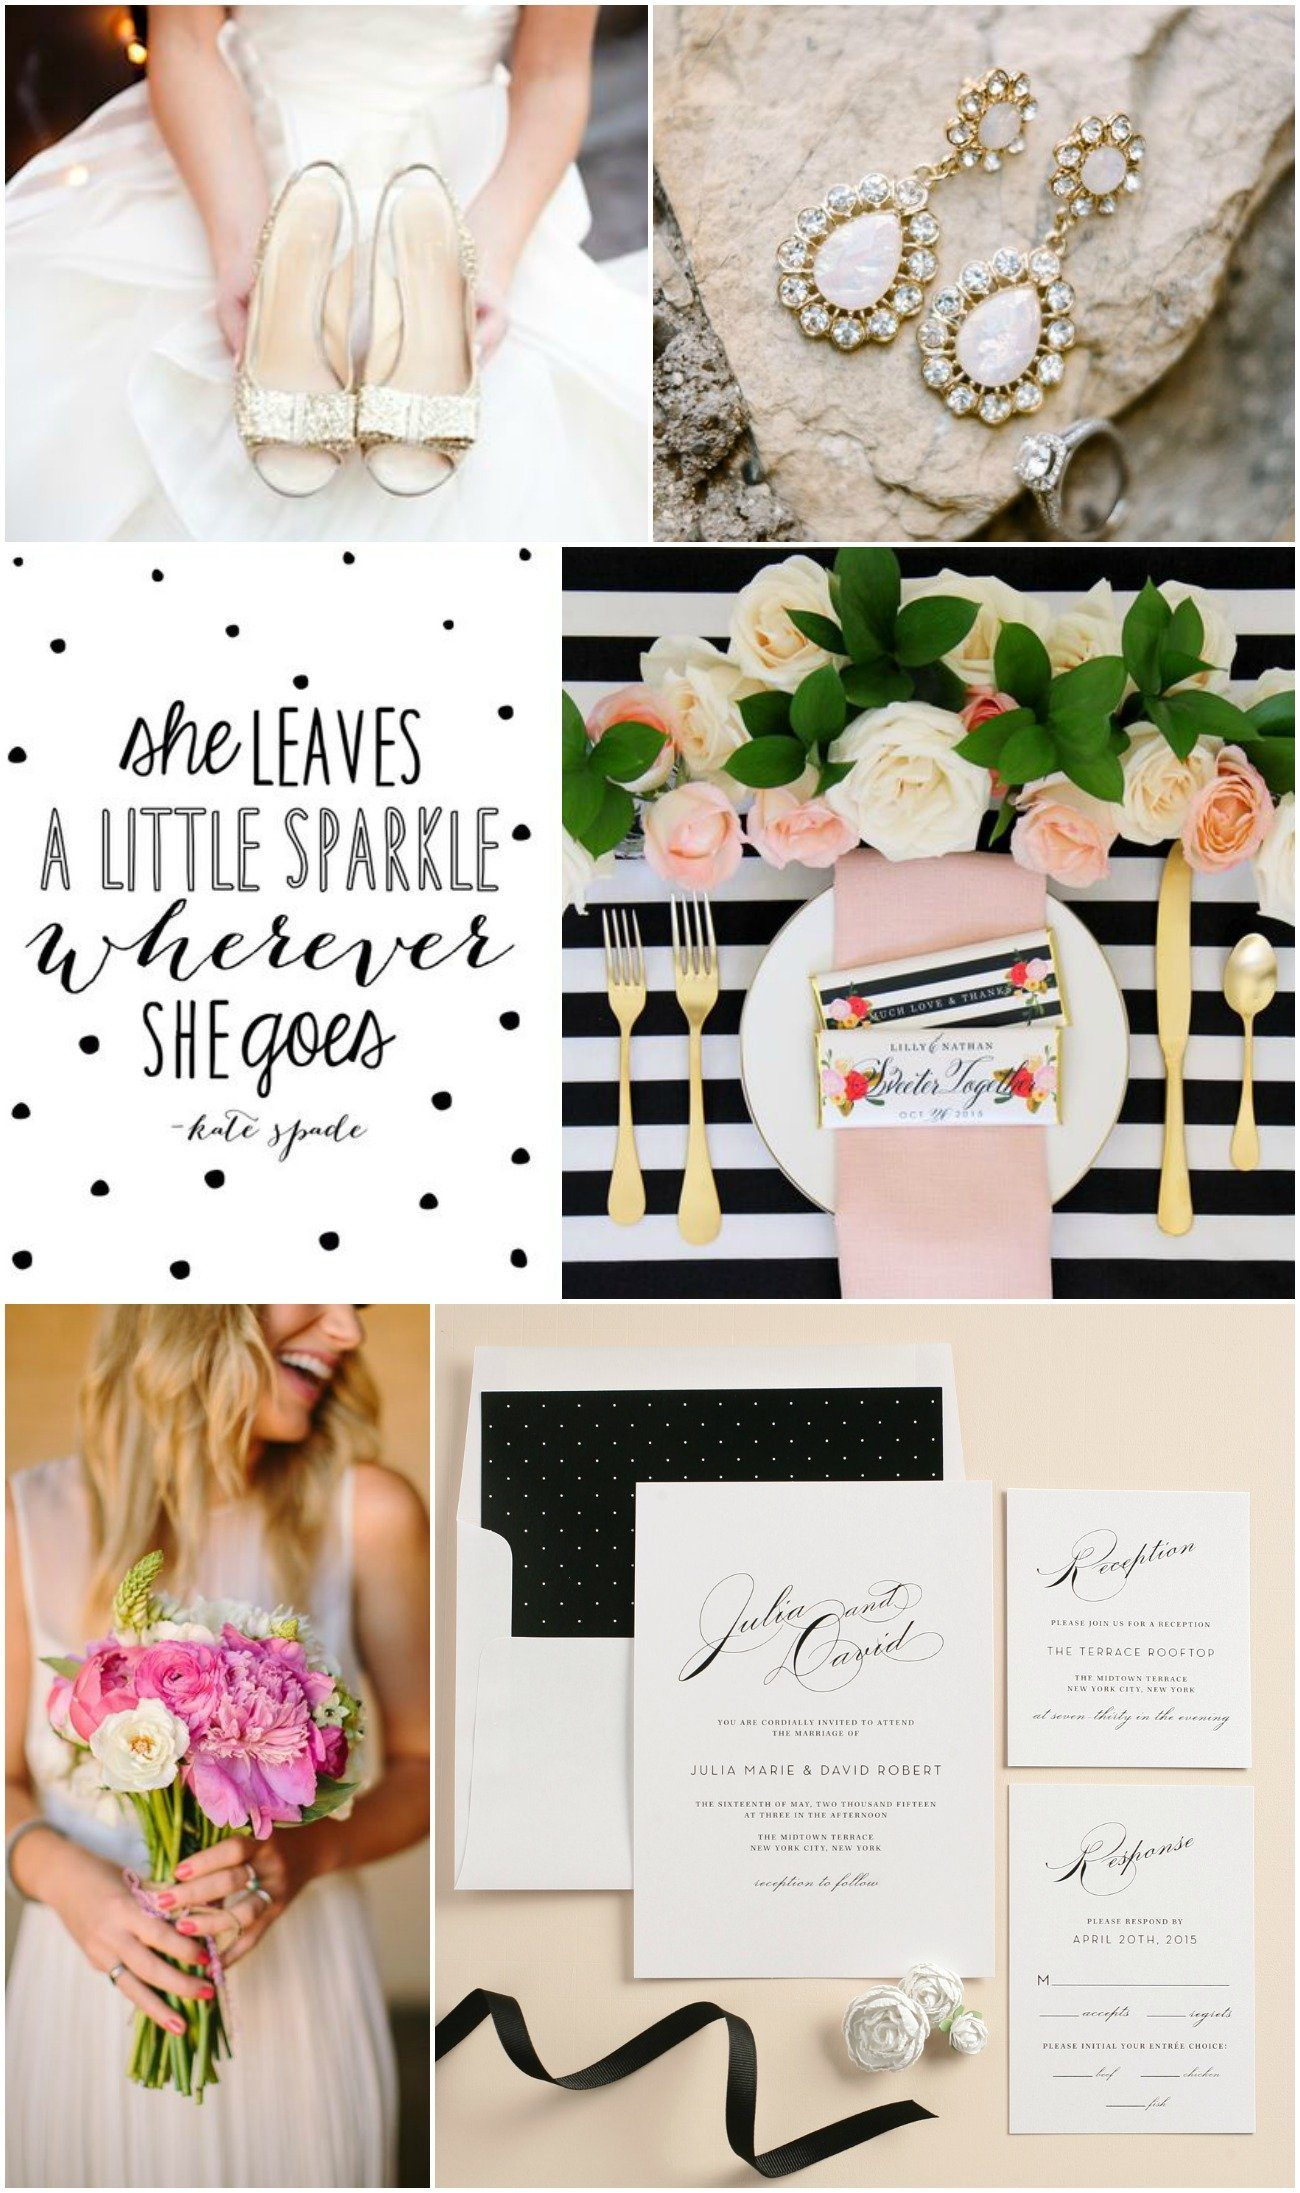 kate spade wedding inspiration – wedding invitations, Wedding invitations